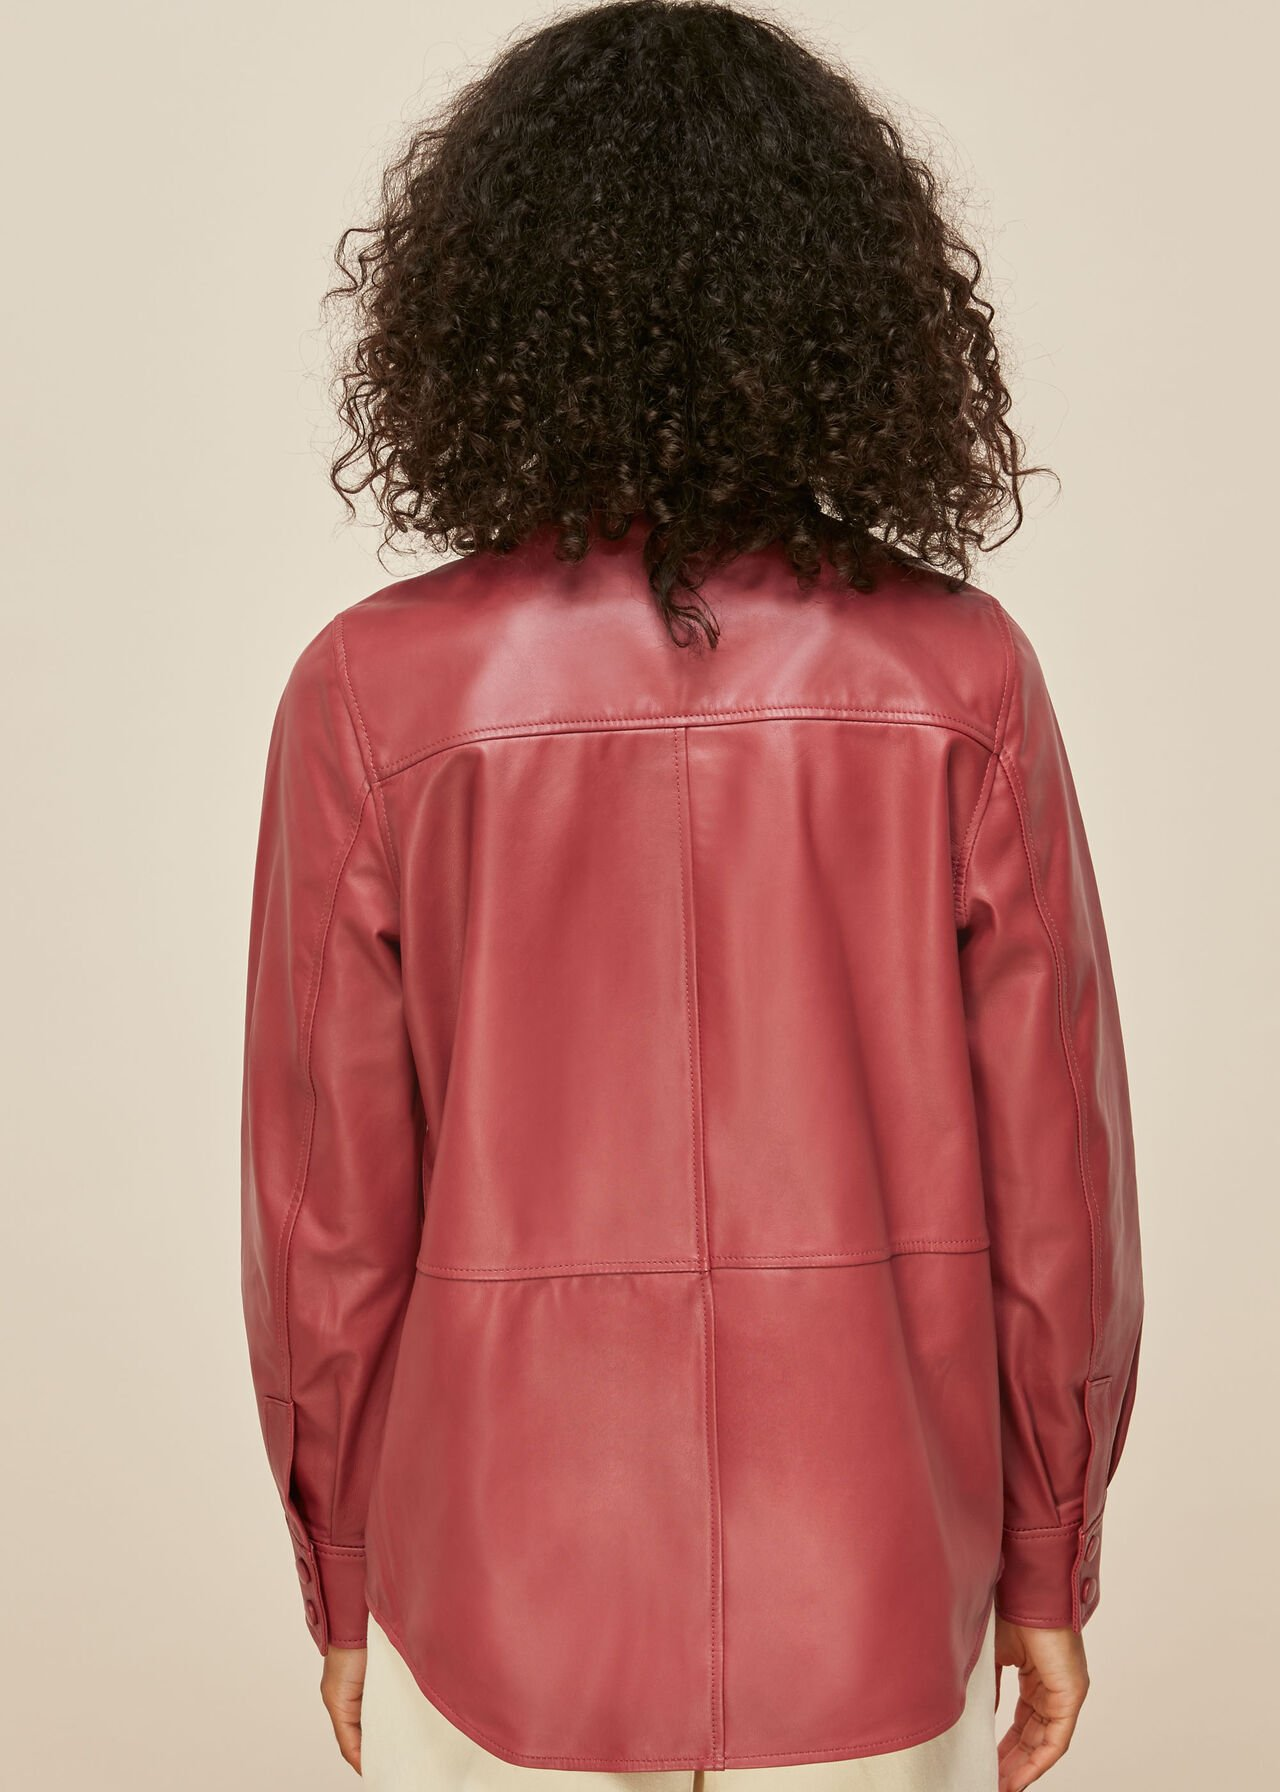 Panelled Leather Shirt